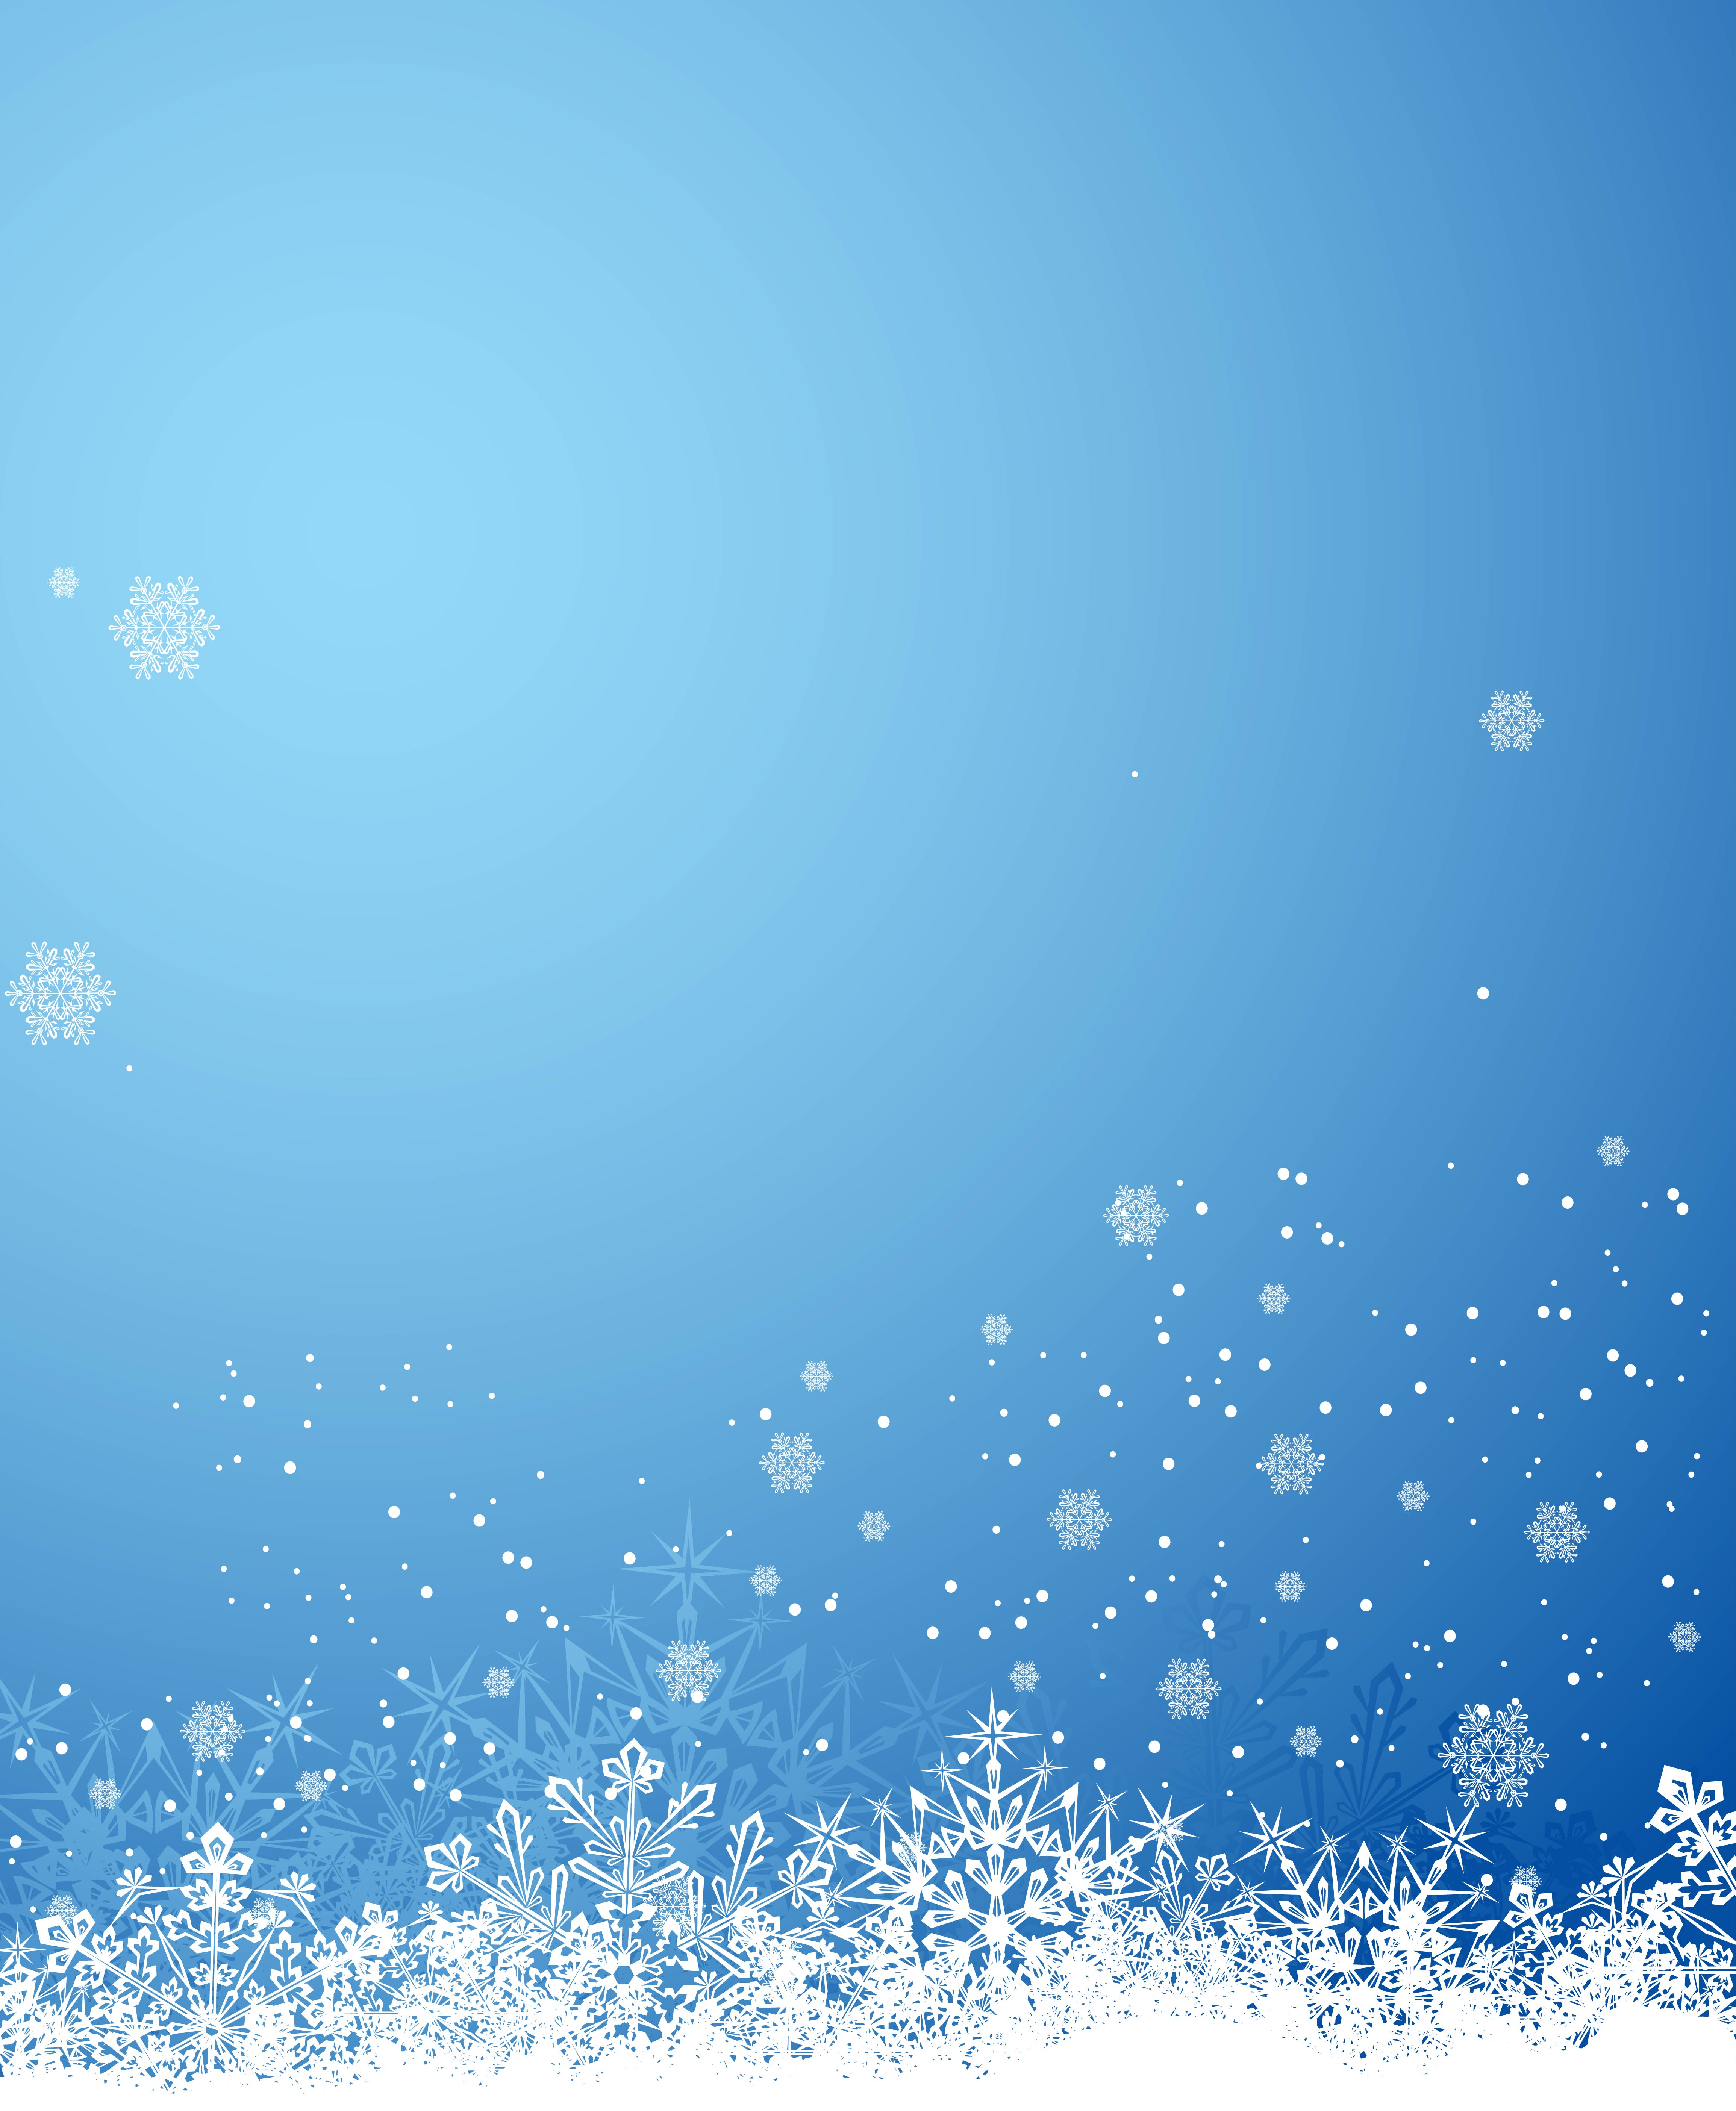 Snowflakes Border Christmas Vector Background Material